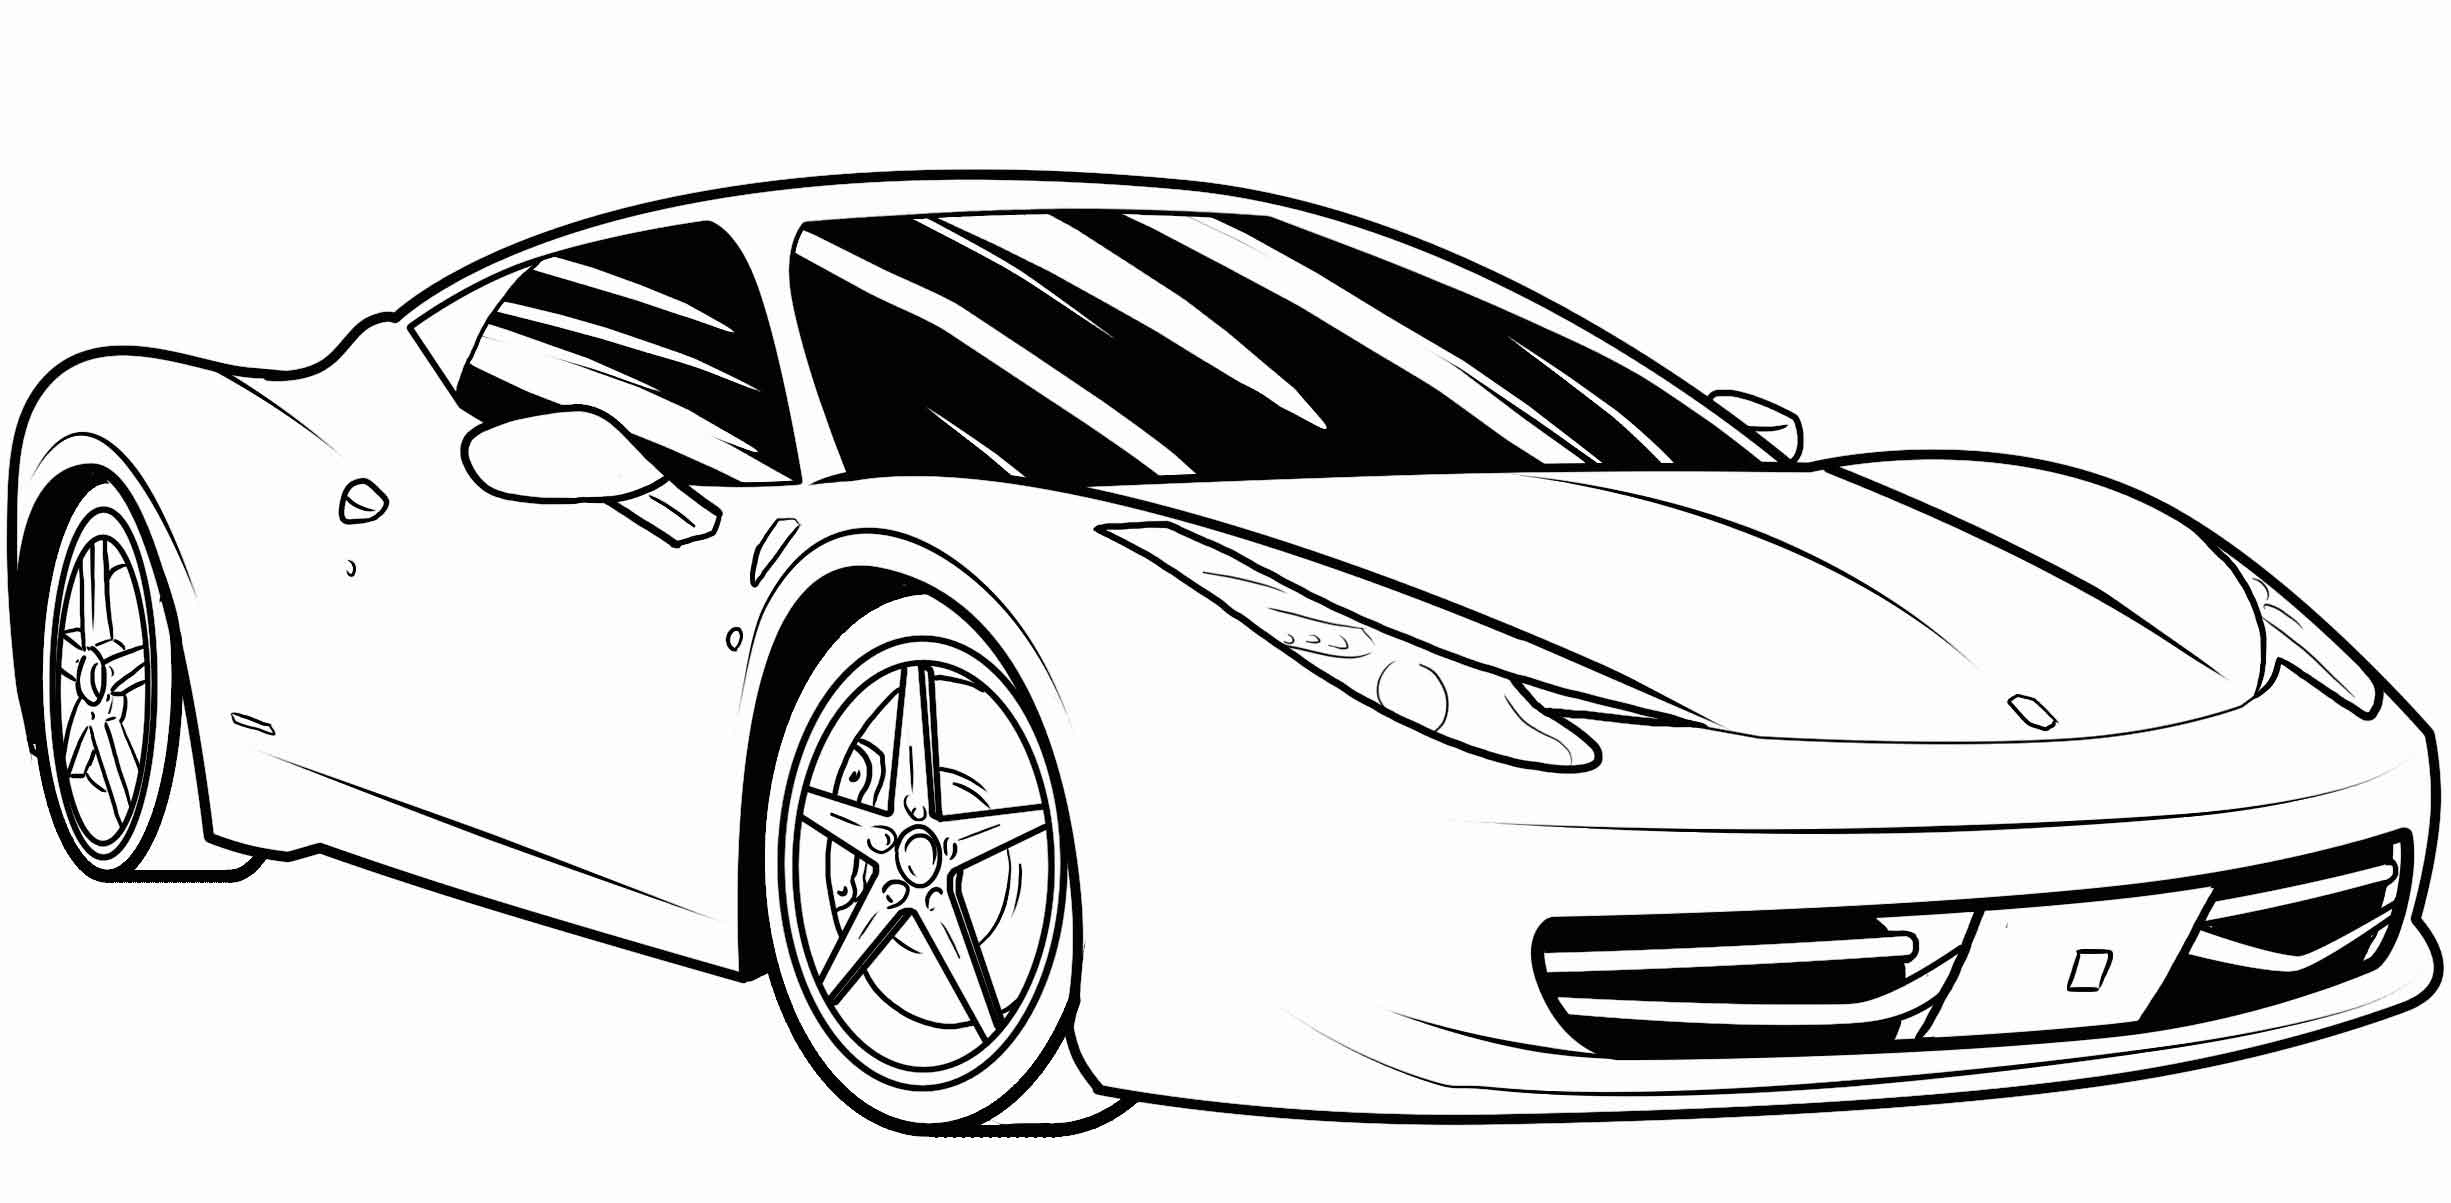 cars colouring pages to print 17 free sports car coloring pages for kids save print pages print colouring cars to